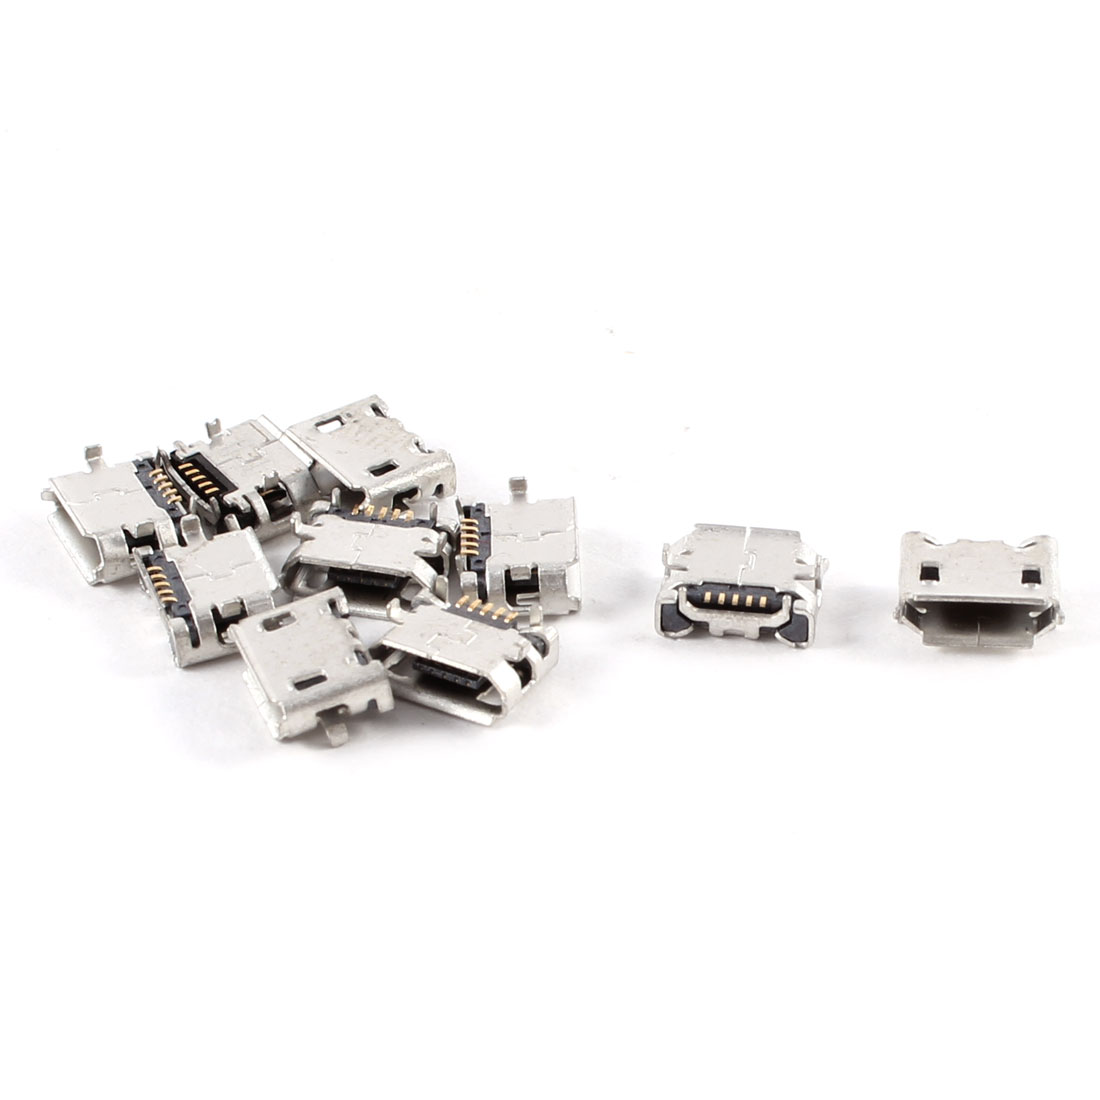 10 Pcs Type B Micro USB Female Charger Charging Jack Connector Port Socket